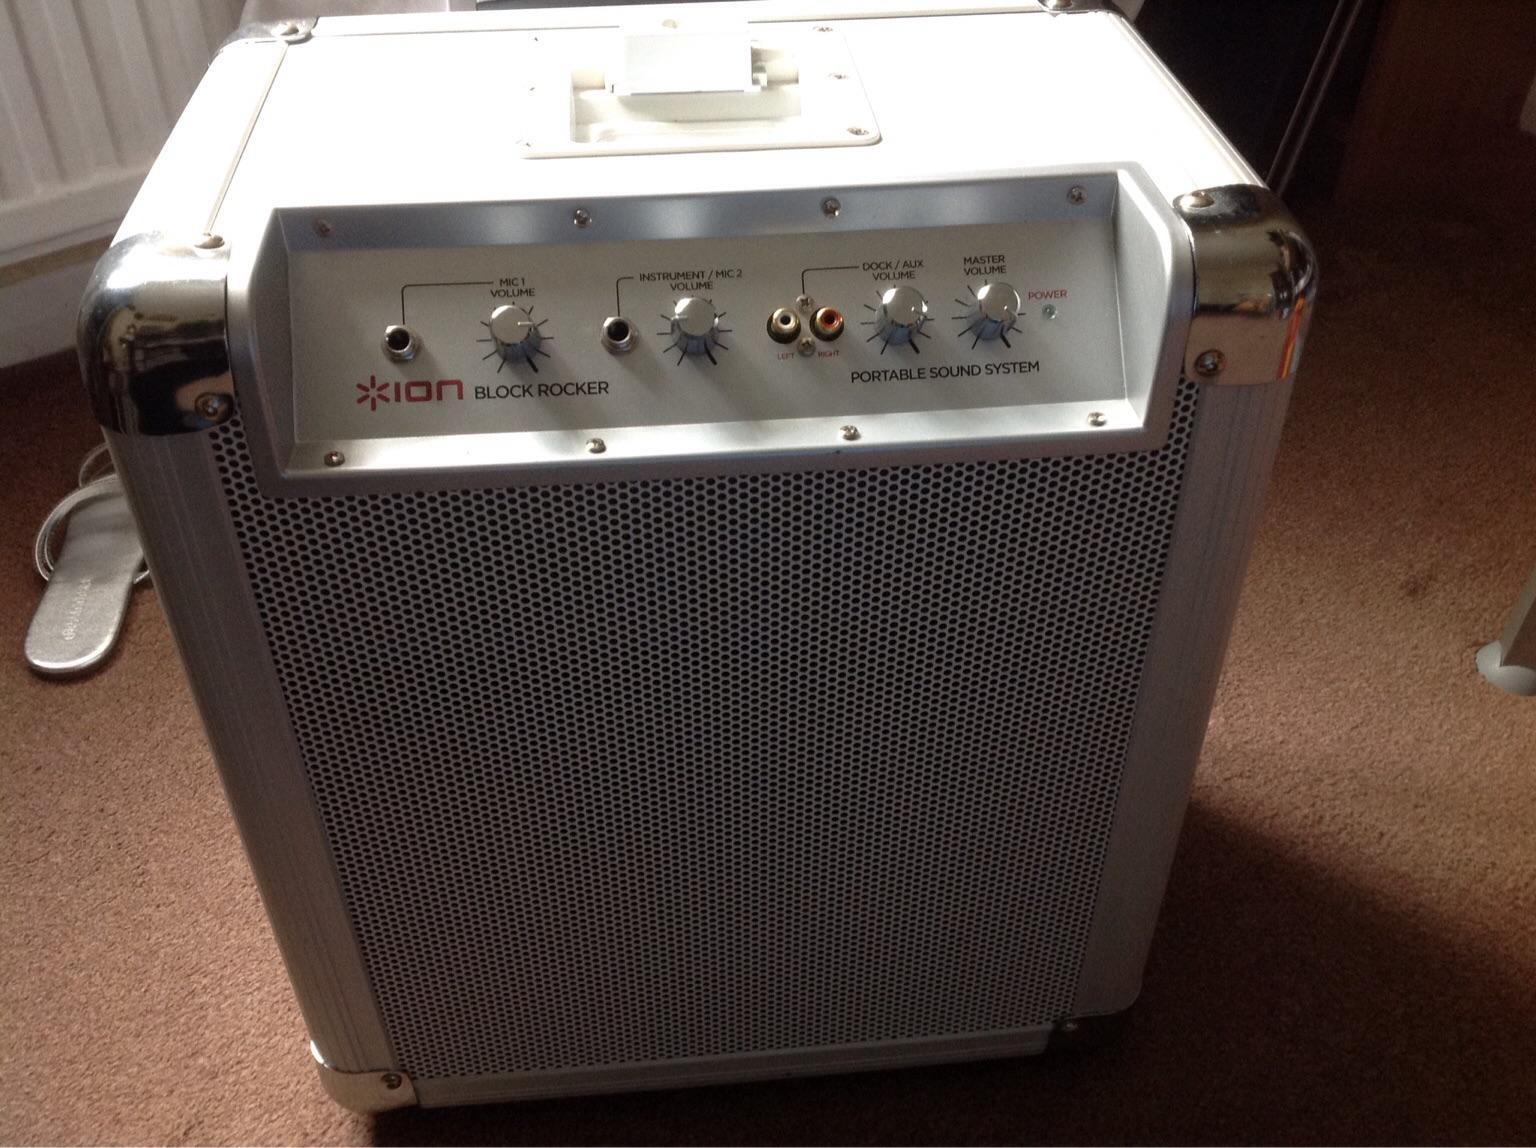 Kendte ion block rocker portable sound system in PE28 Huntingdonshire for CX-05